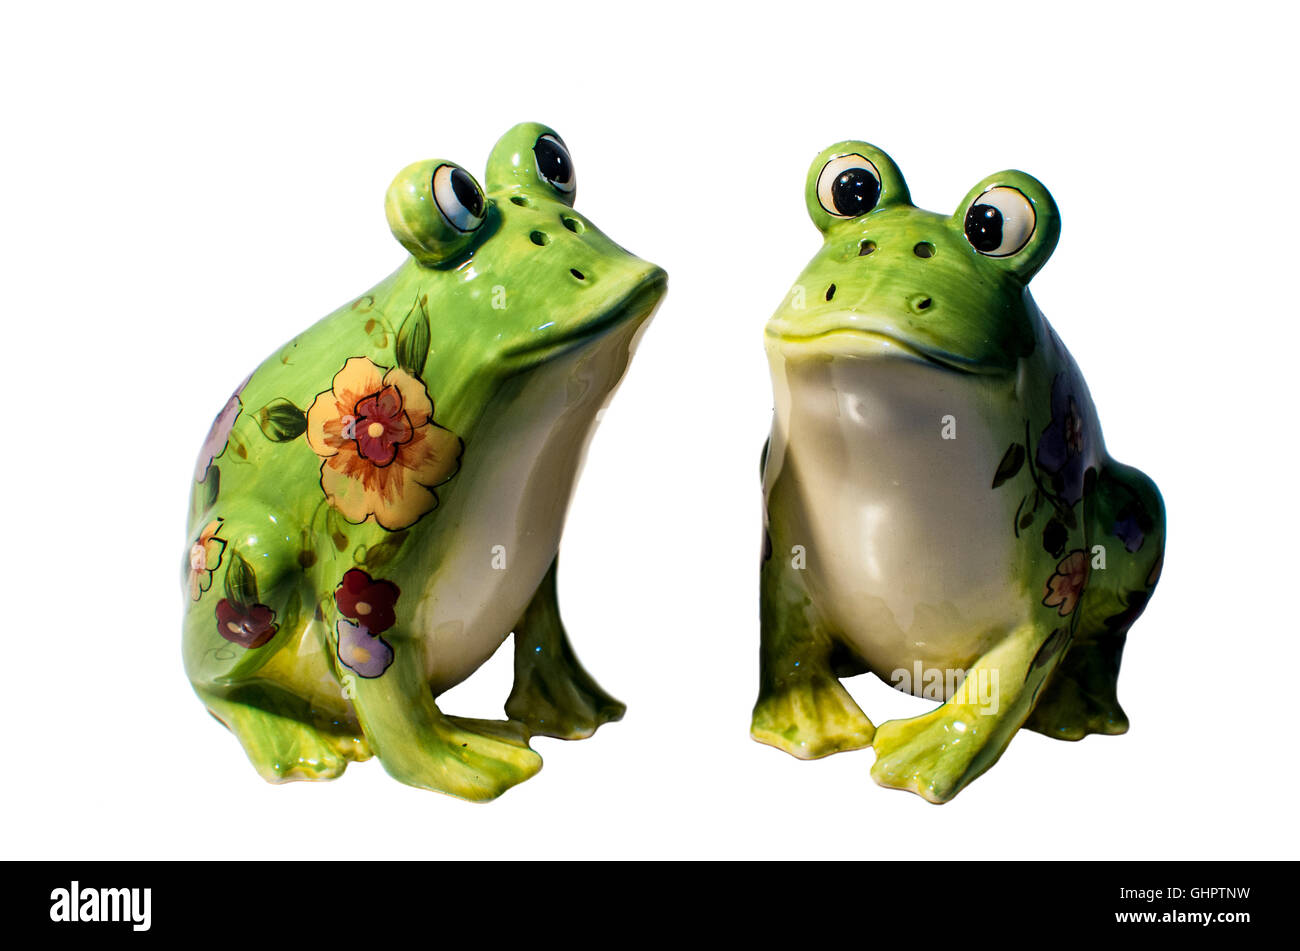 ceramic frog stockfotos ceramic frog bilder alamy. Black Bedroom Furniture Sets. Home Design Ideas